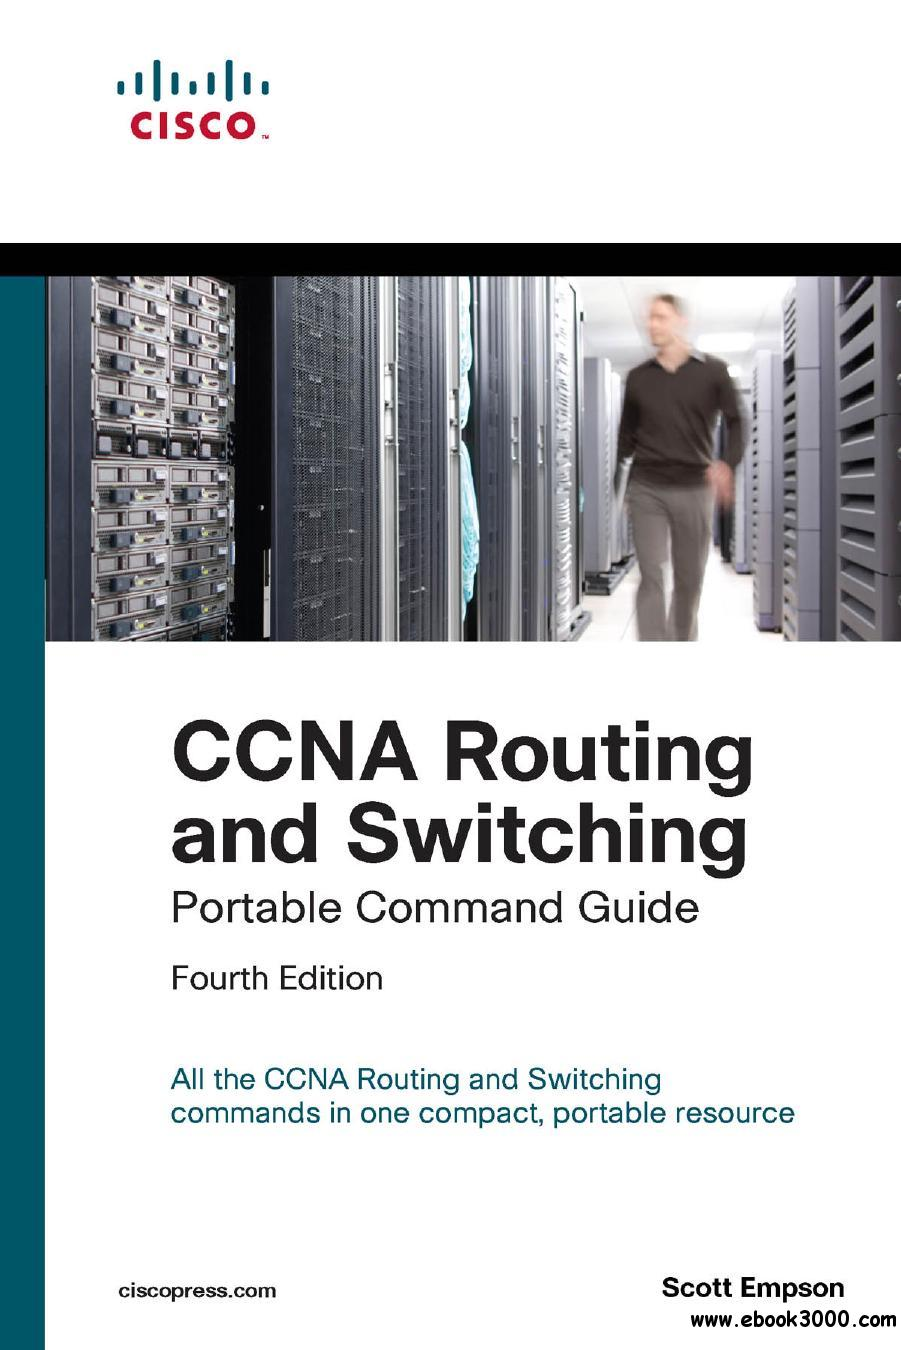 CCNA Routing and Switching Portable Command Guide, 4th Edition